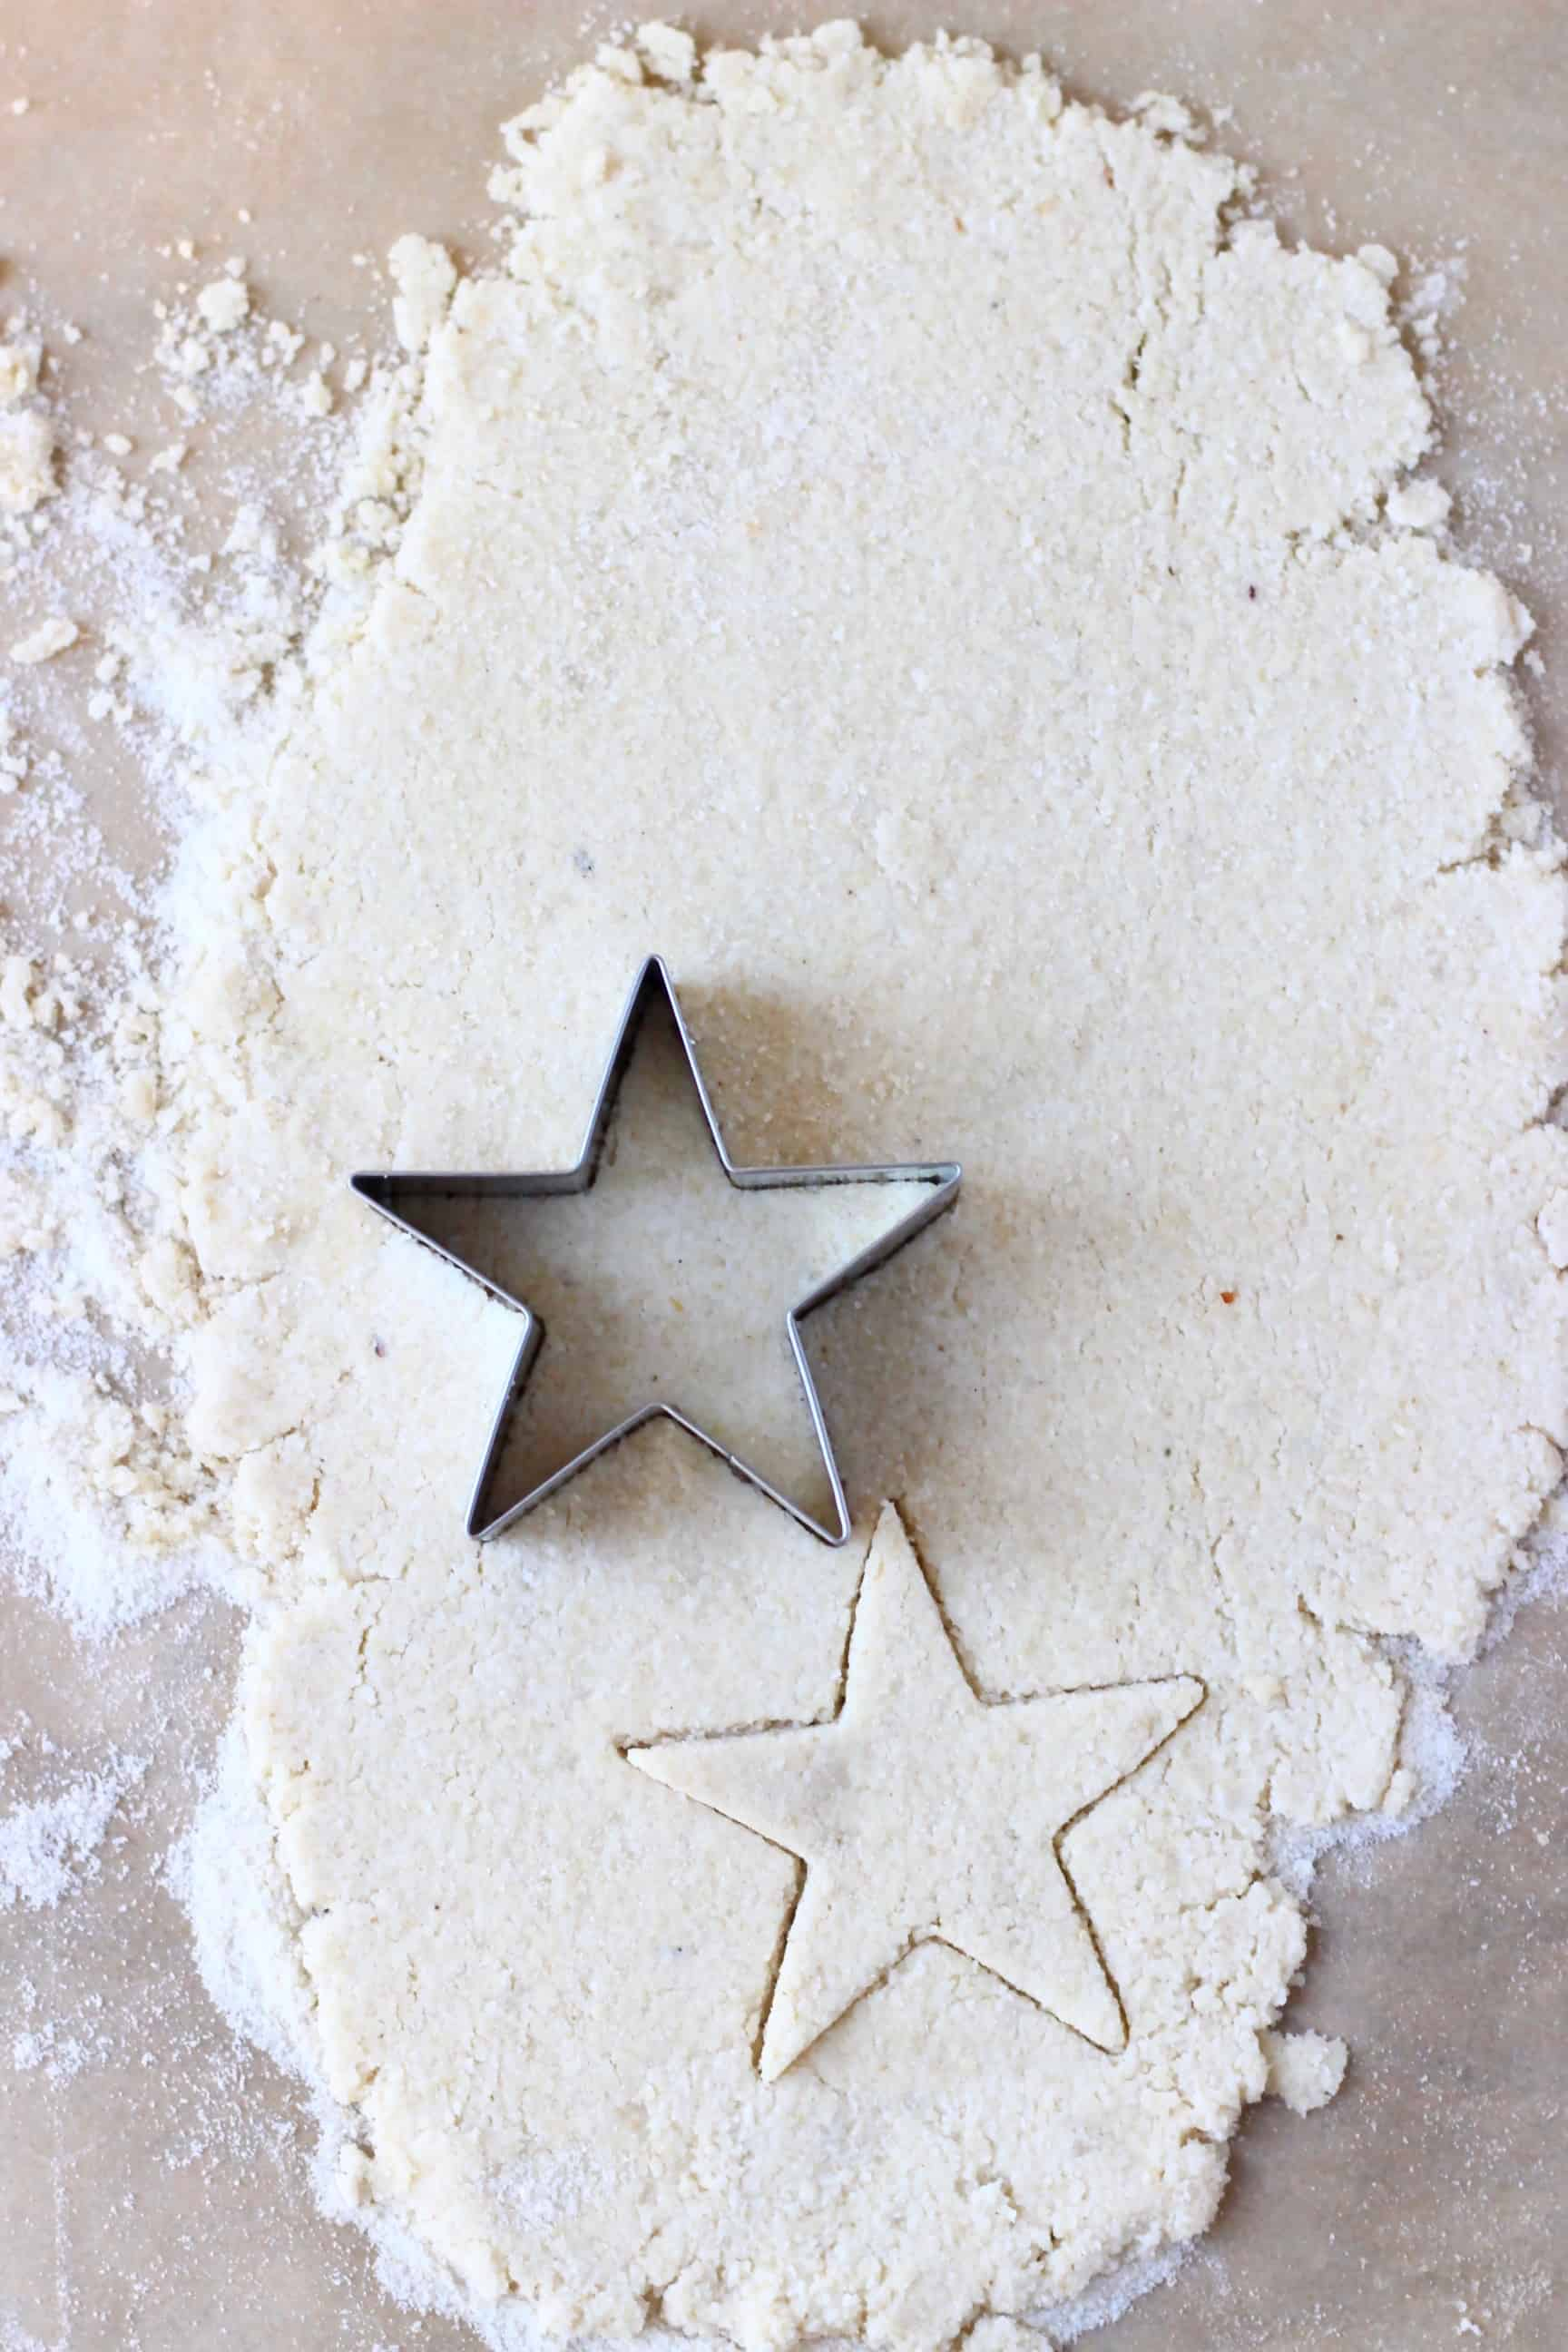 Gluten-free vegan pastry dough rolled out on a sheet of baking paper with a star-shaped cookie cutter on it